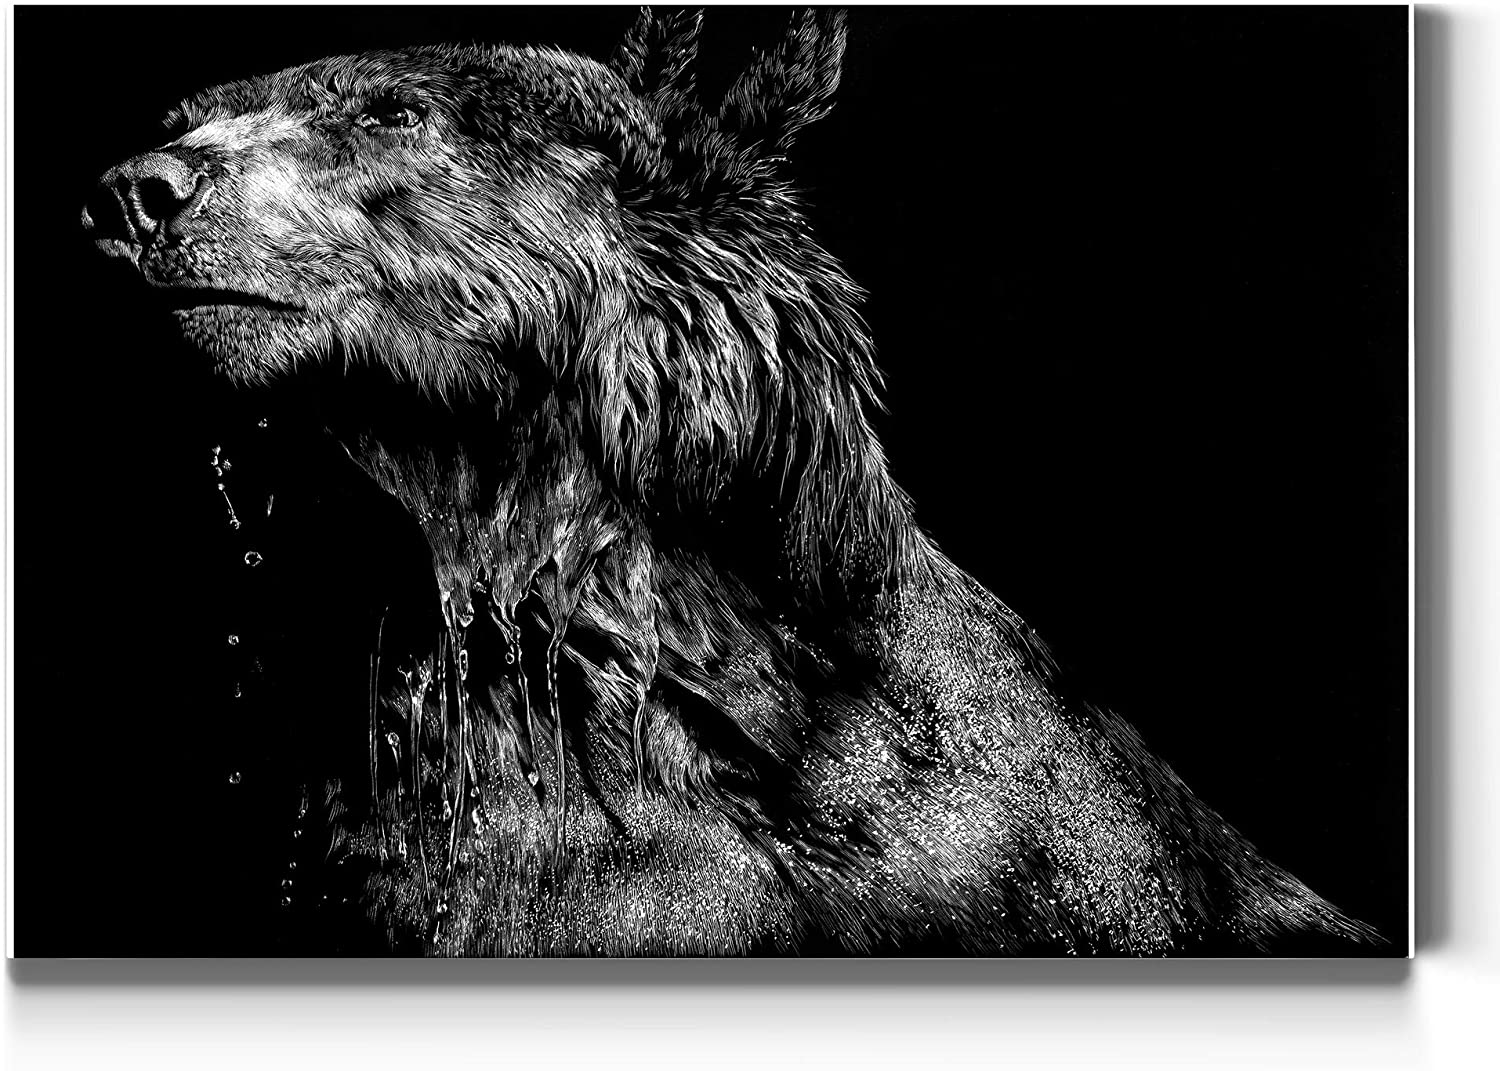 Renditions Gallery Wild Scratchboard (4) Wall Art, Ursa Major, She Bear (Female) Detailed Black and White, Premium Gallery Wrapped Canvas Decor, Ready to Hang, 12 In H x 18 In W, Made in America Print